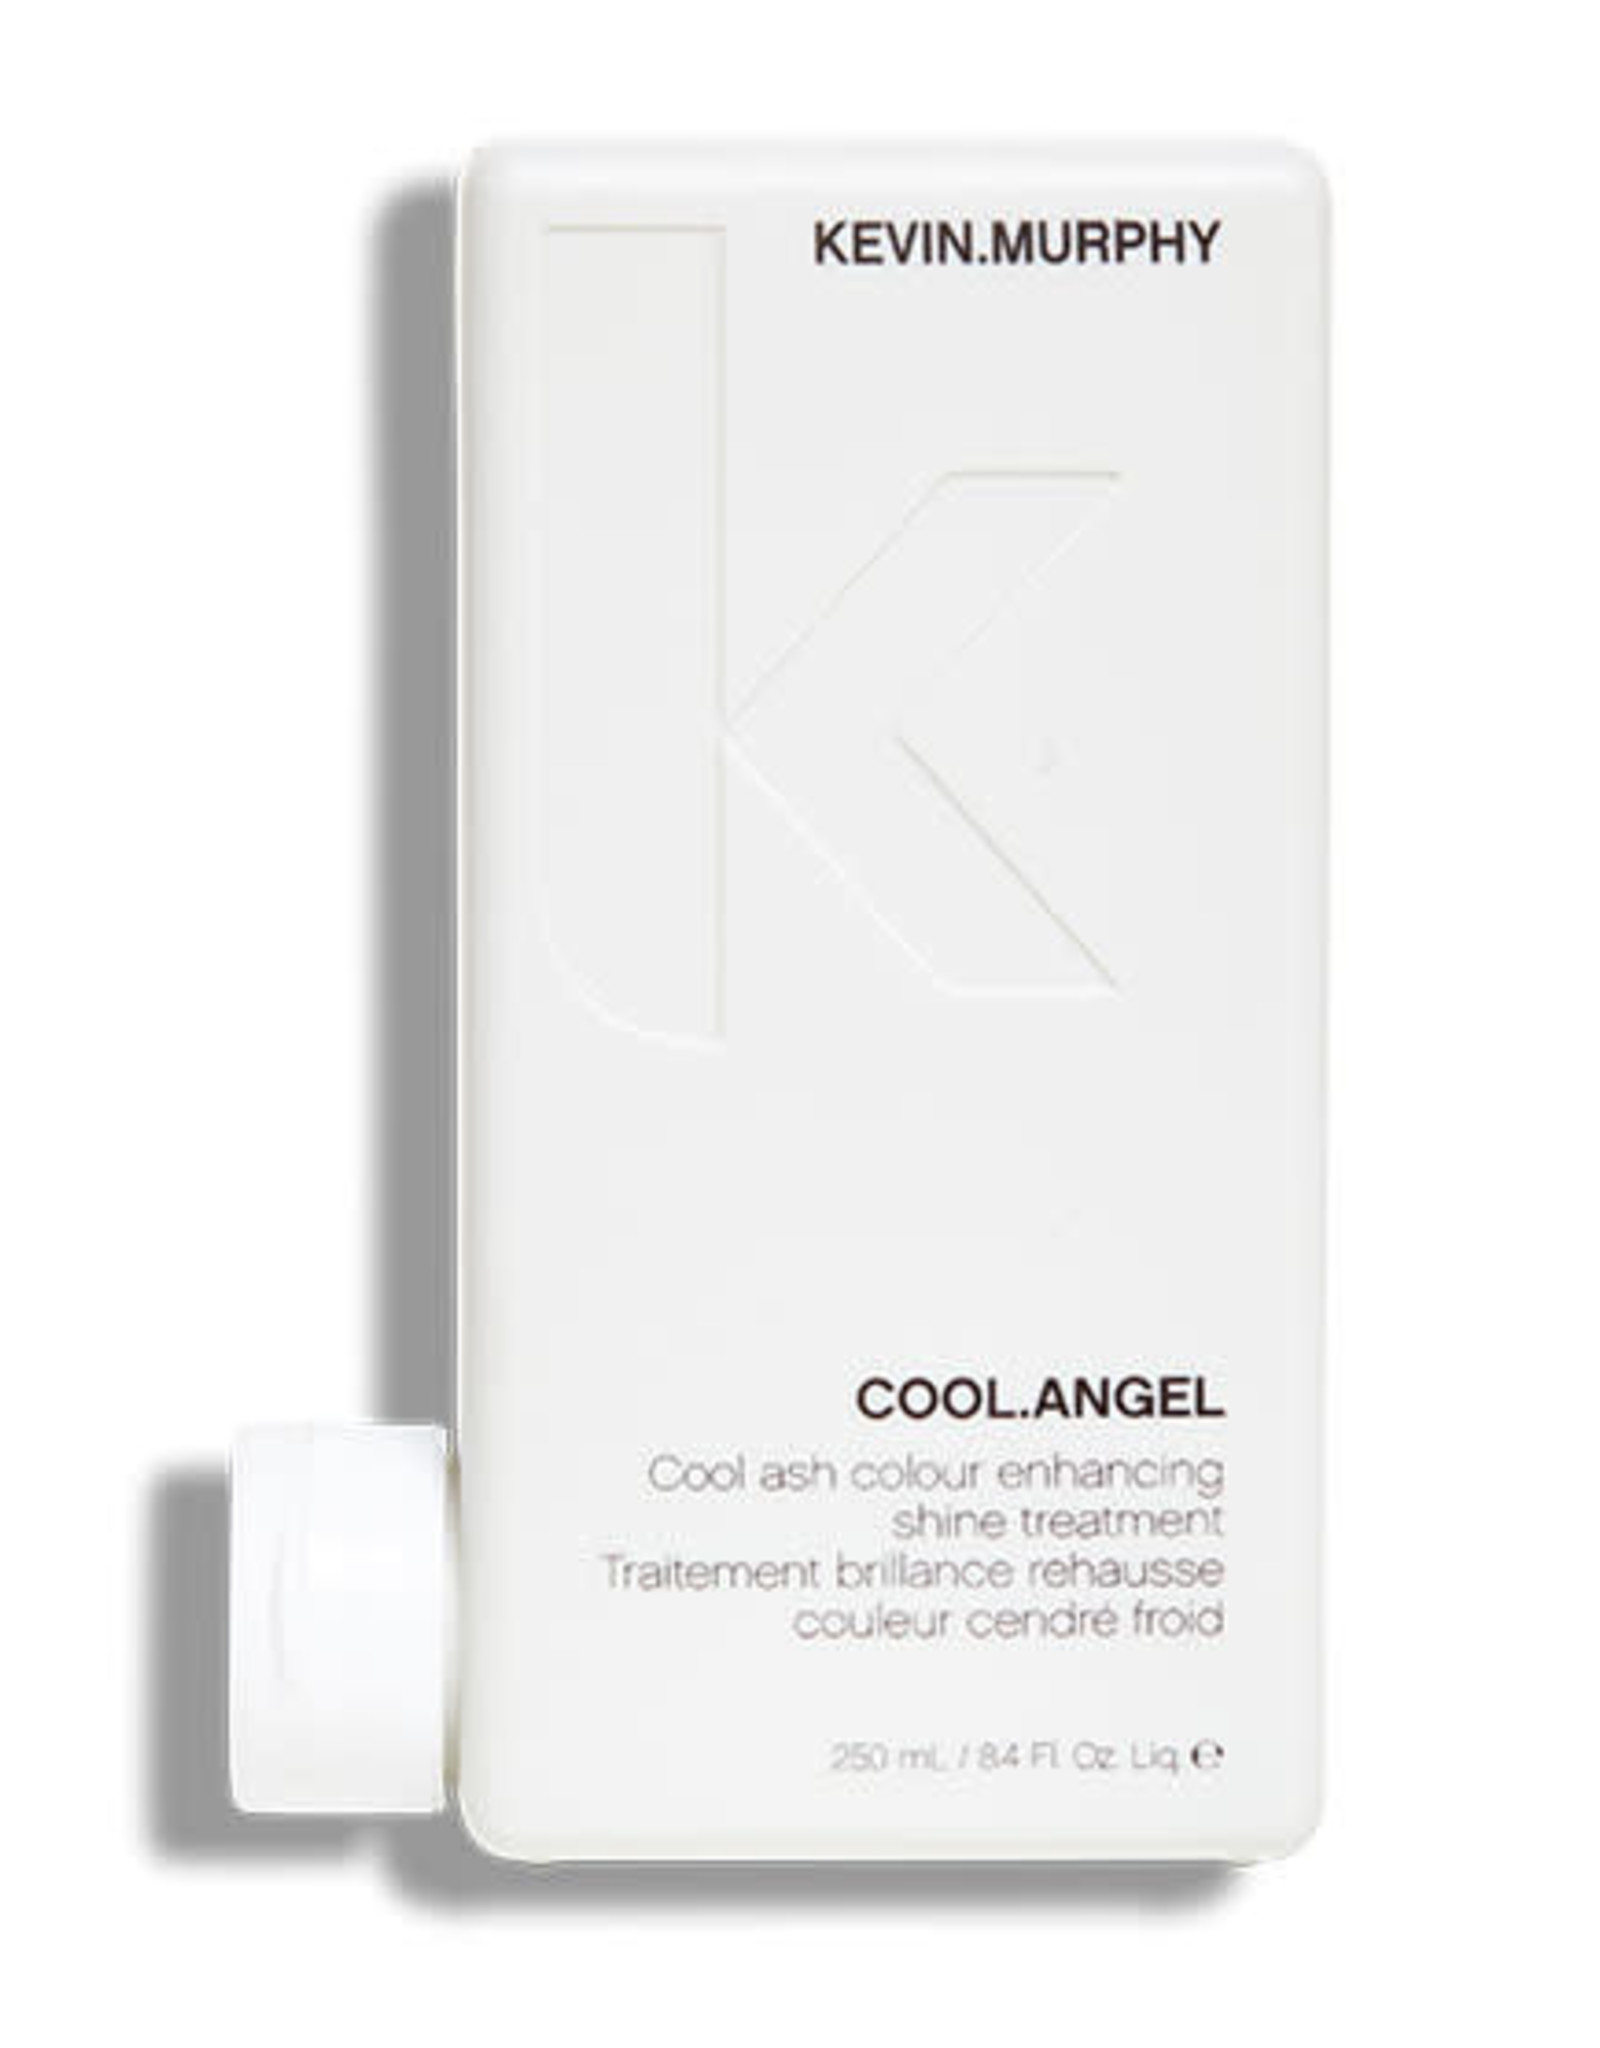 KEVIN.MURPHY COOL.ANGEL